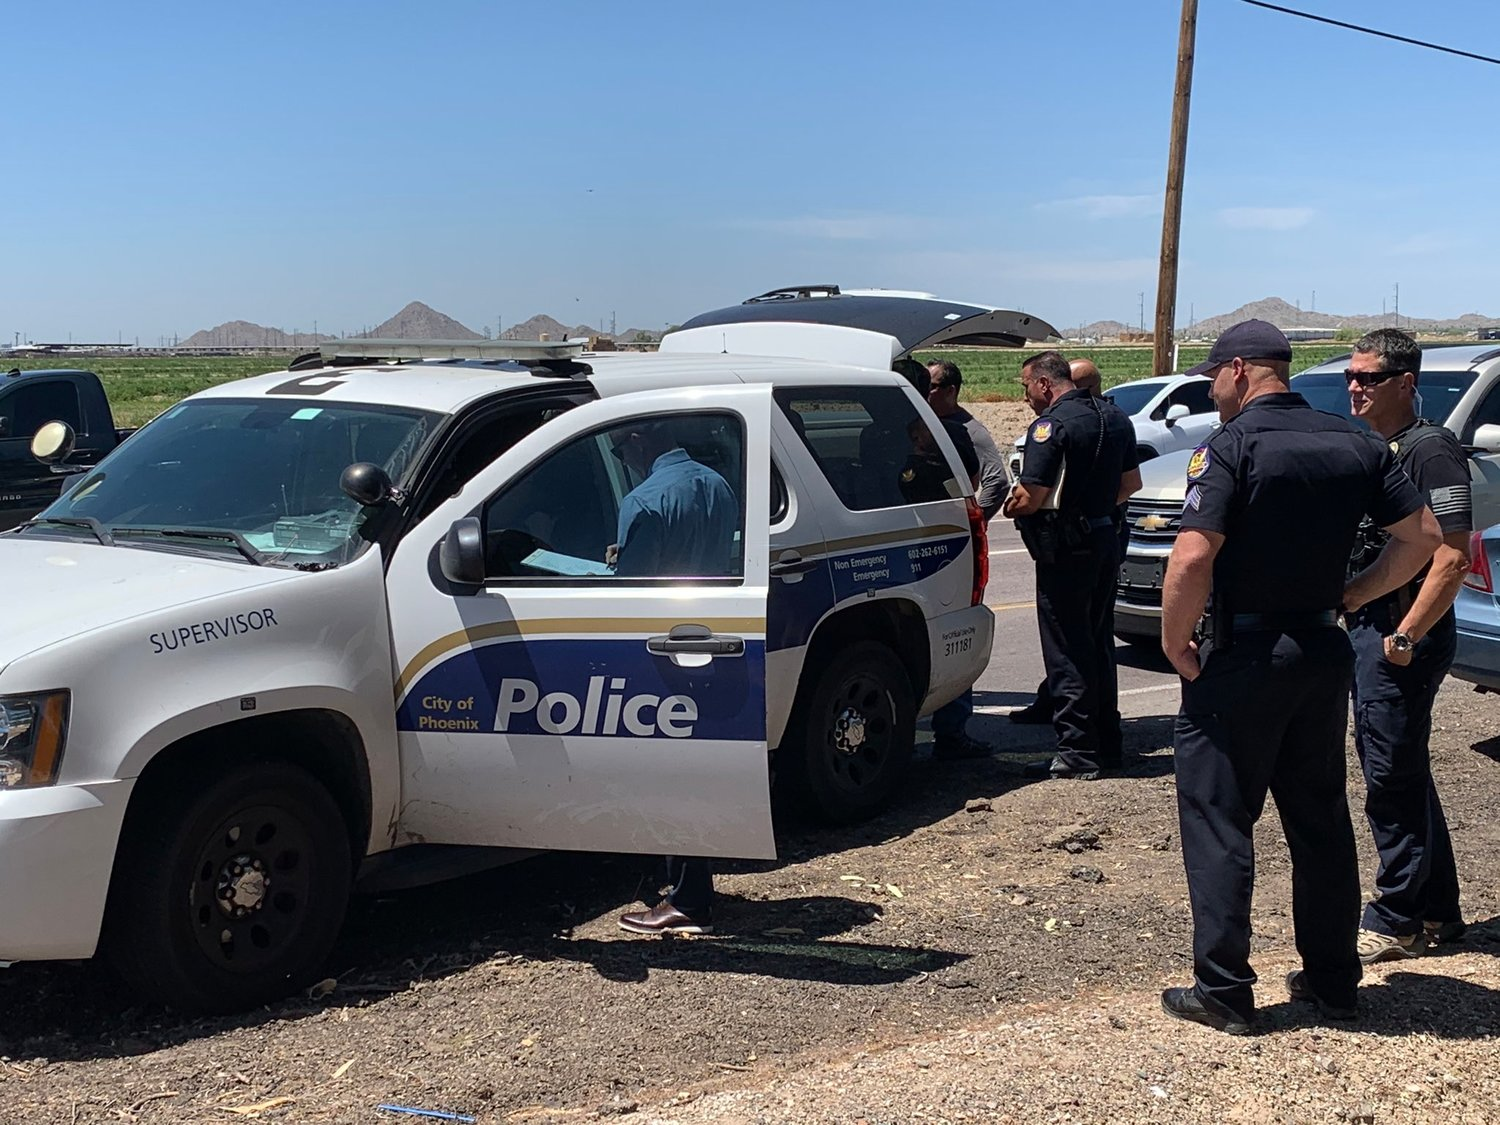 Phoenix police shot and injured a stolen vehicle suspect in Buckeye on April 28, 2020.